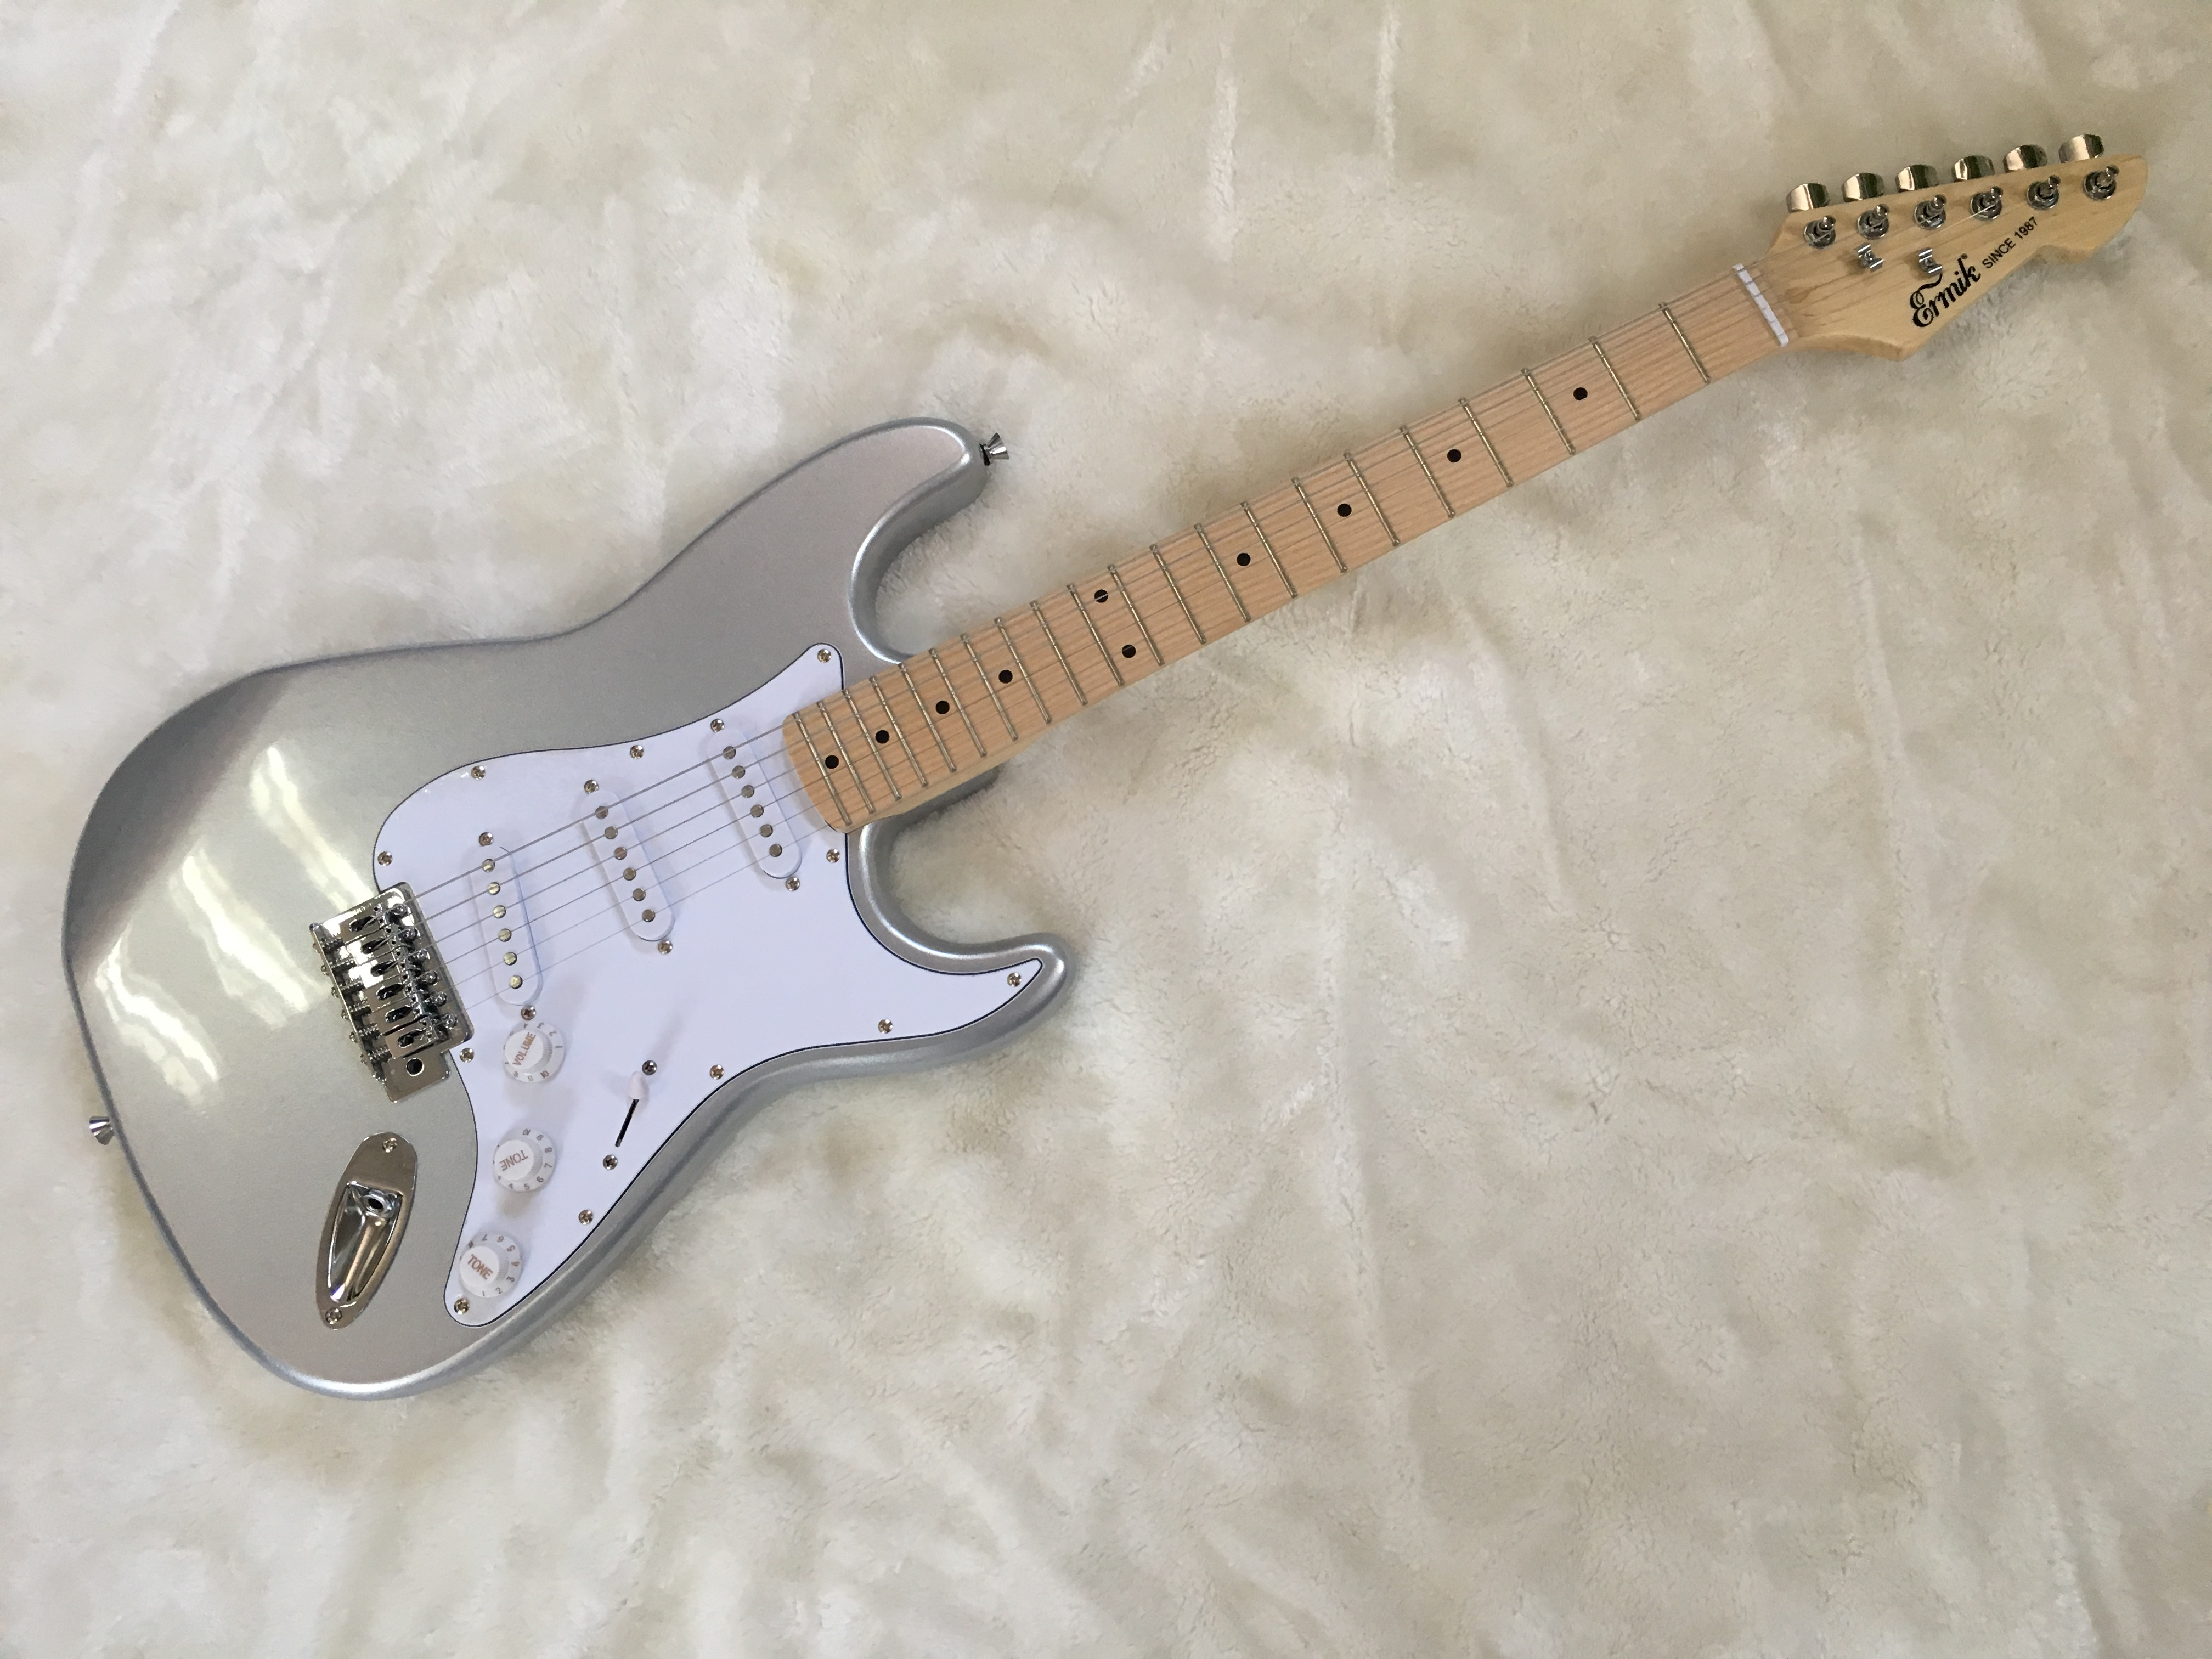 Electric guitar/2019 new ermik st silvery color guitar/guitar in chinaElectric guitar/2019 new ermik st silvery color guitar/guitar in china